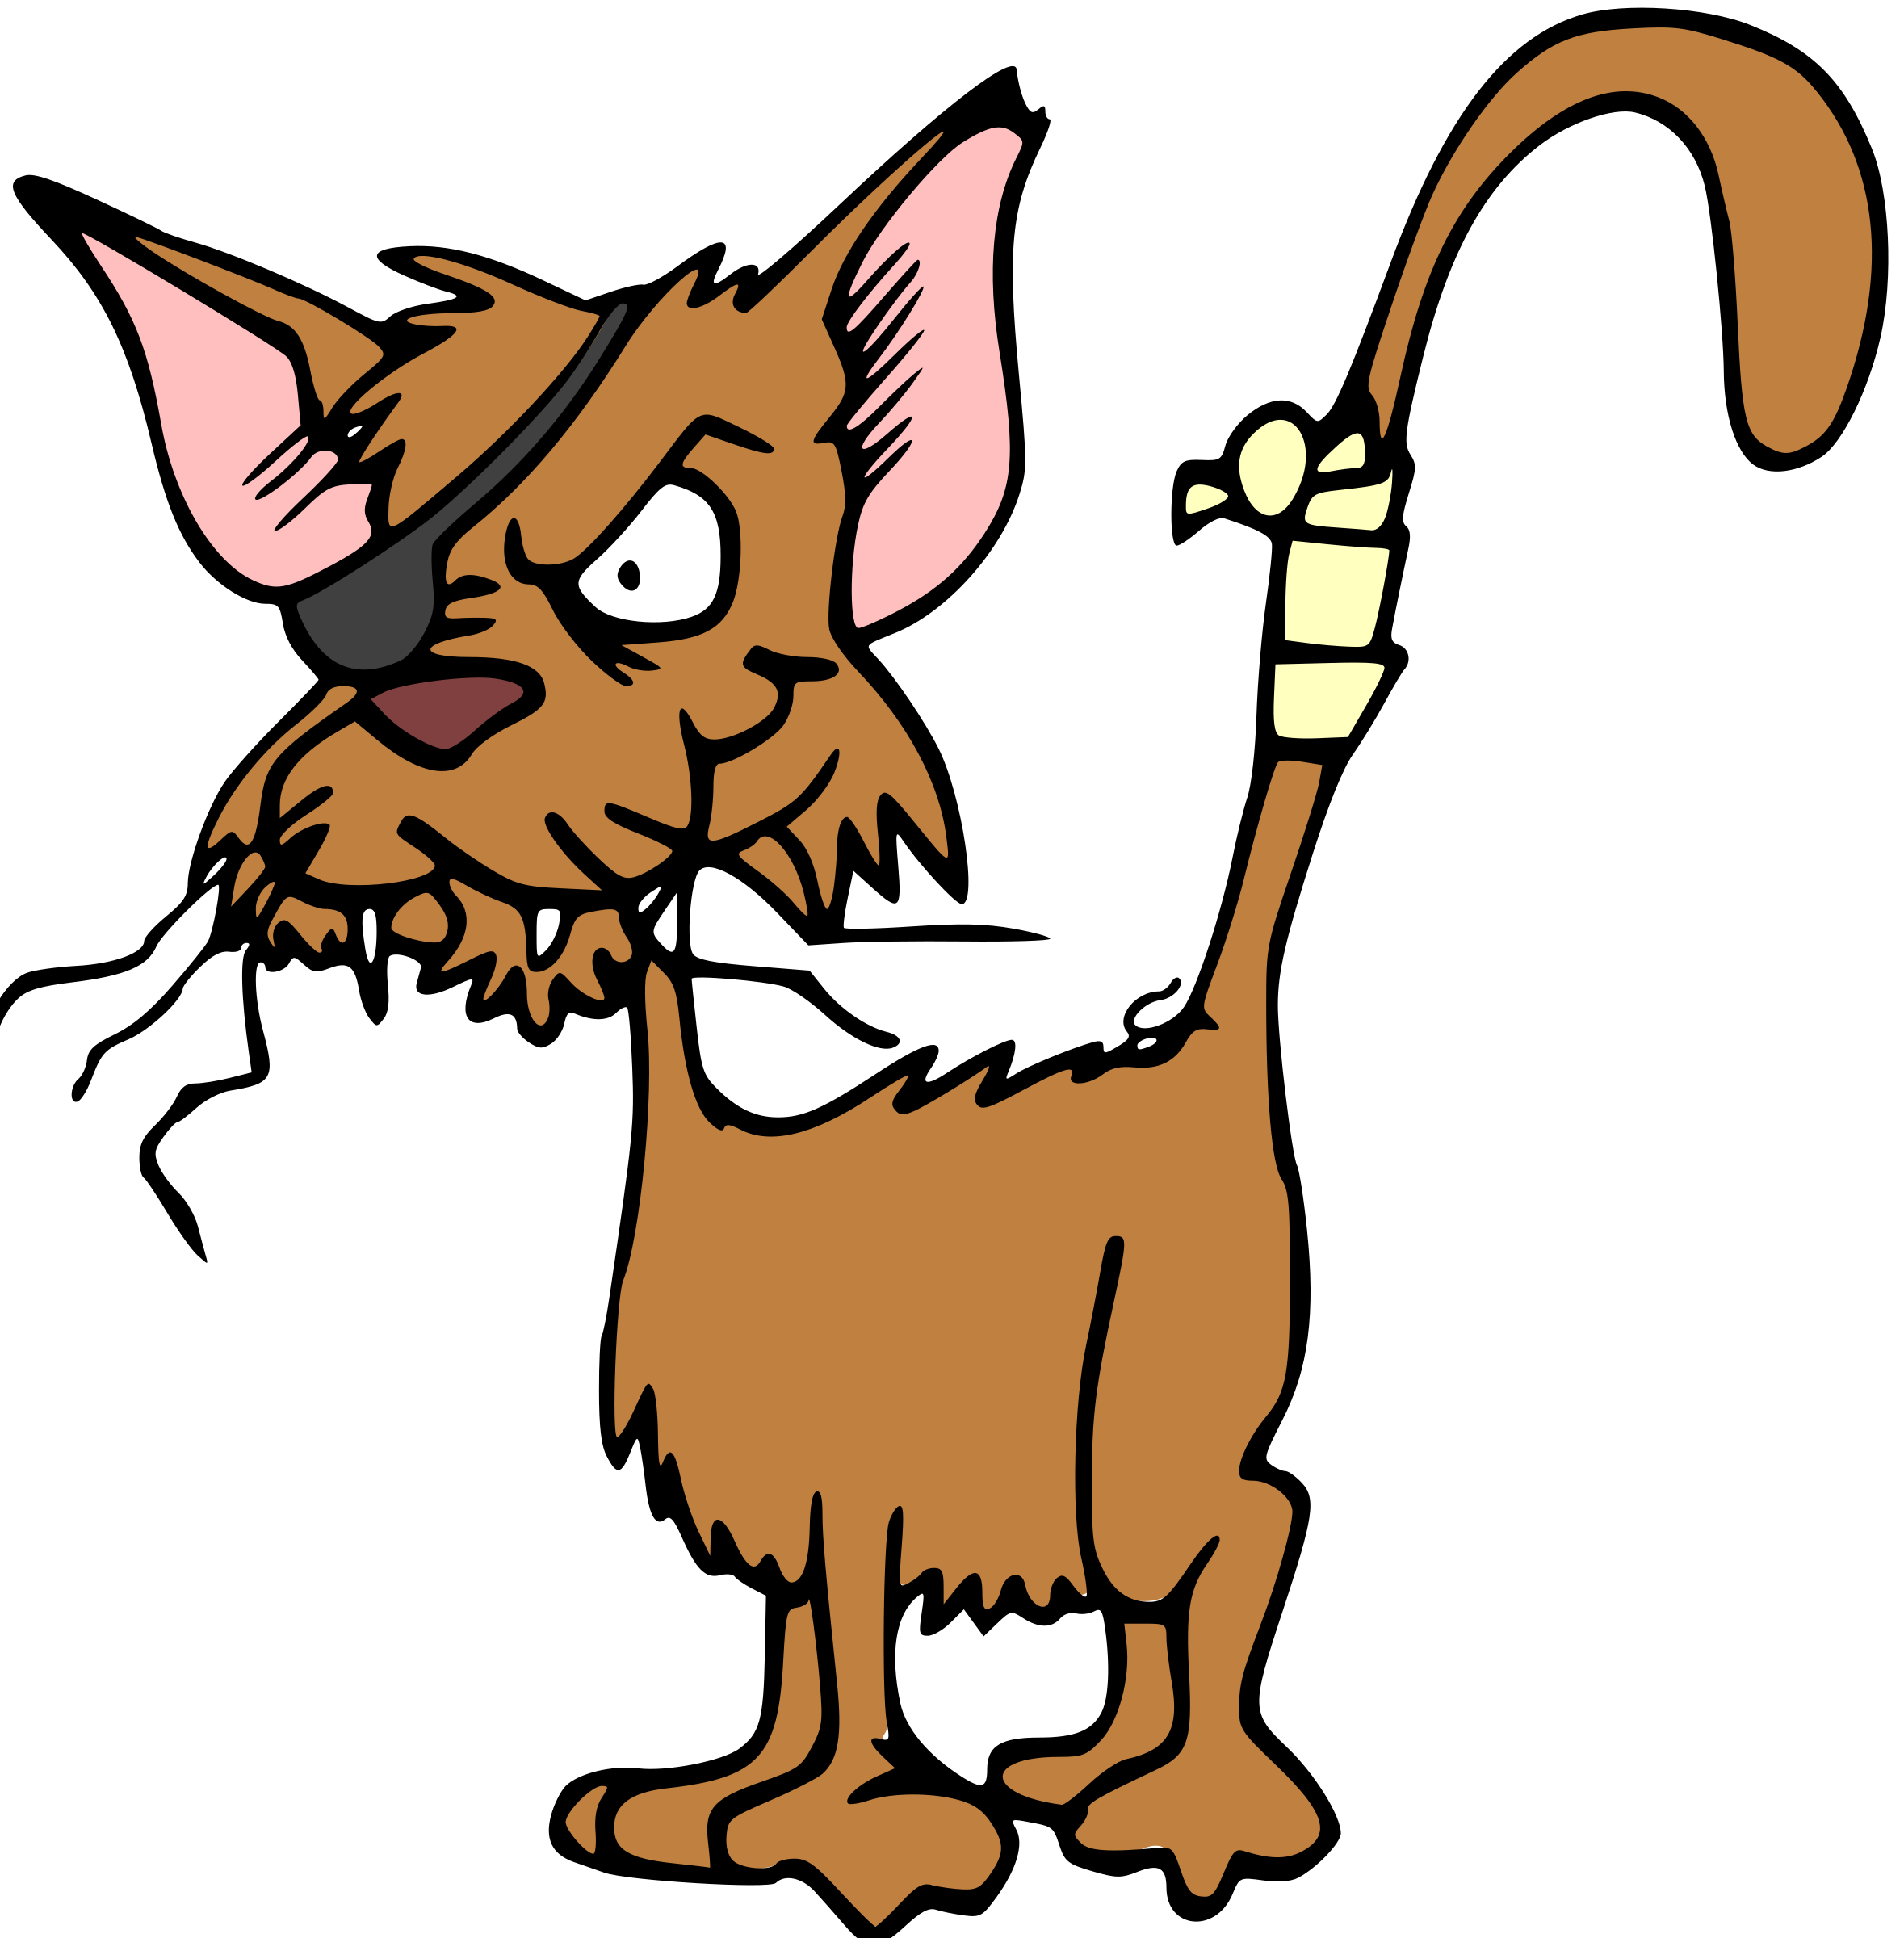 Fire clipart cat. Free cartoon fighting cliparts